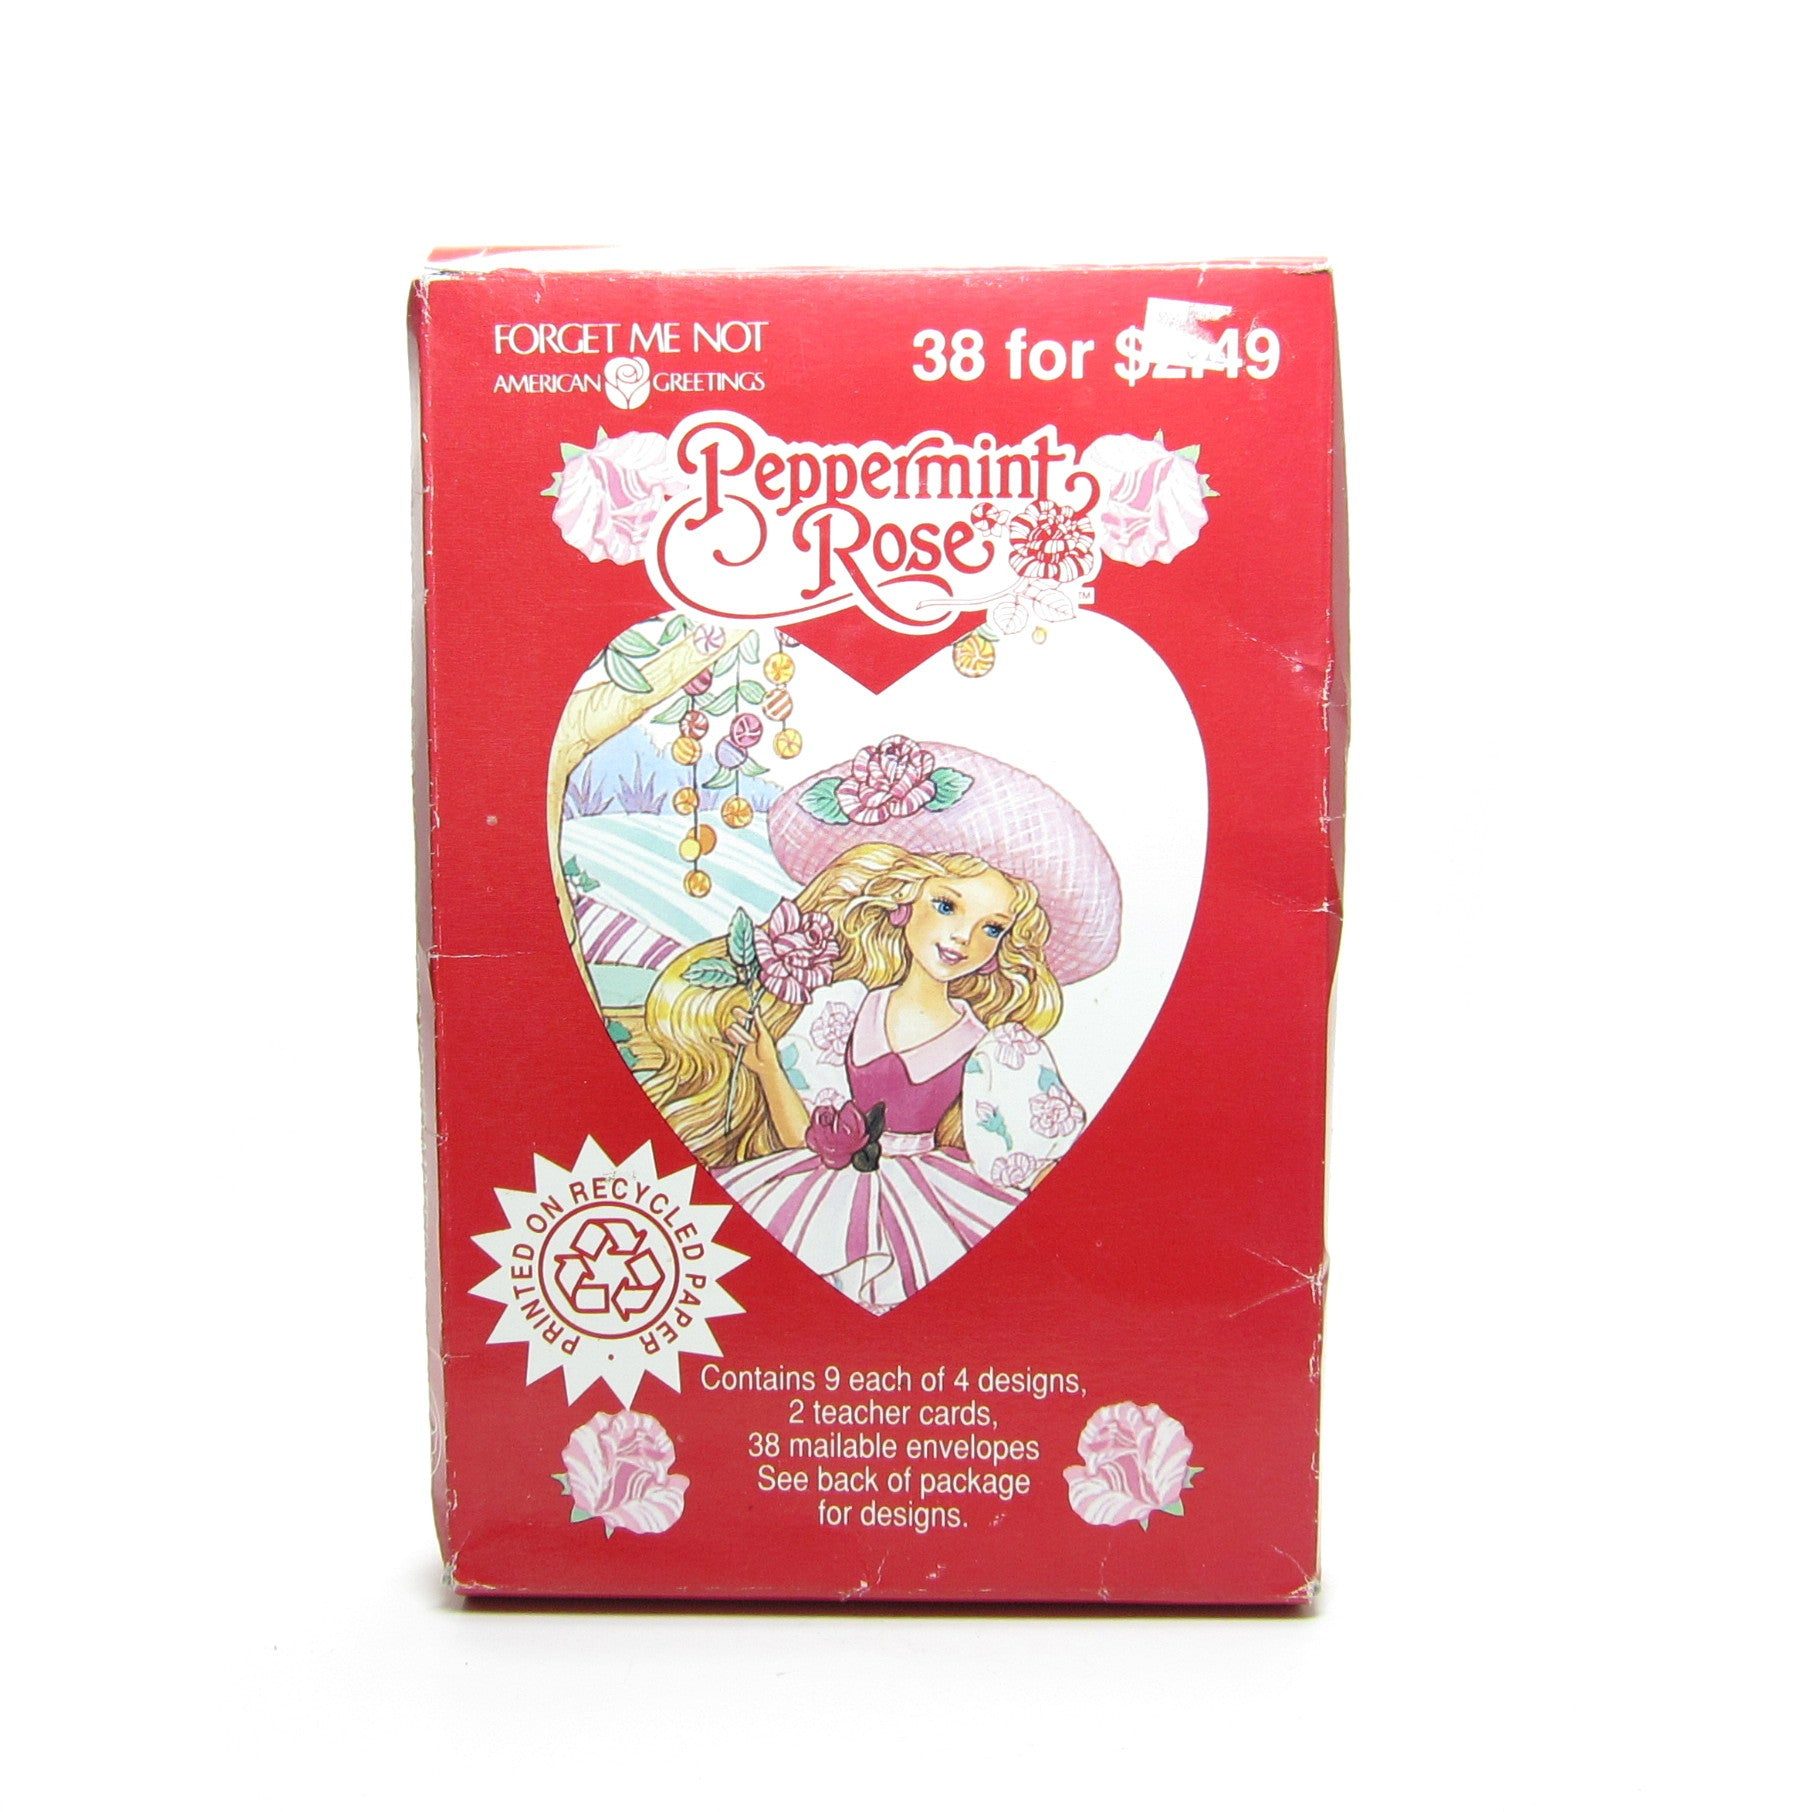 Peppermint Rose Valentine's Day cards Mint in Box